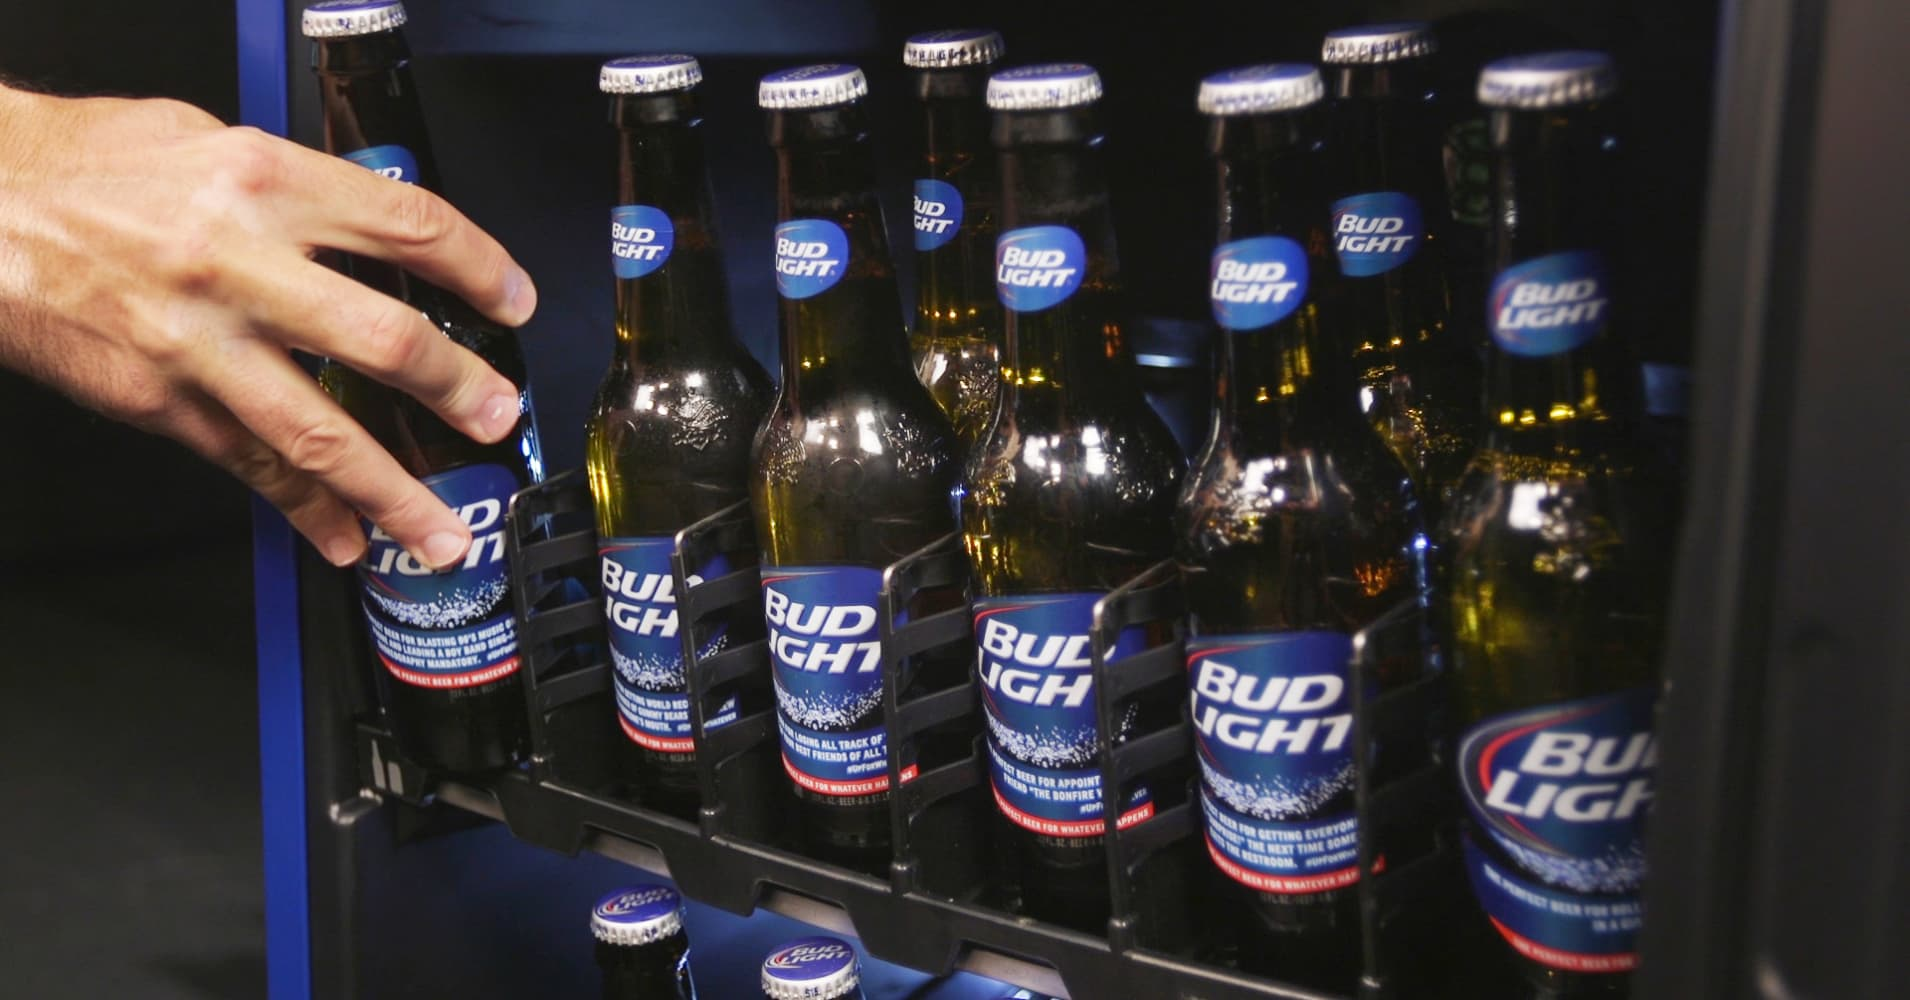 Out Of Beer Bud Light S Smart Fridge Will Tell You